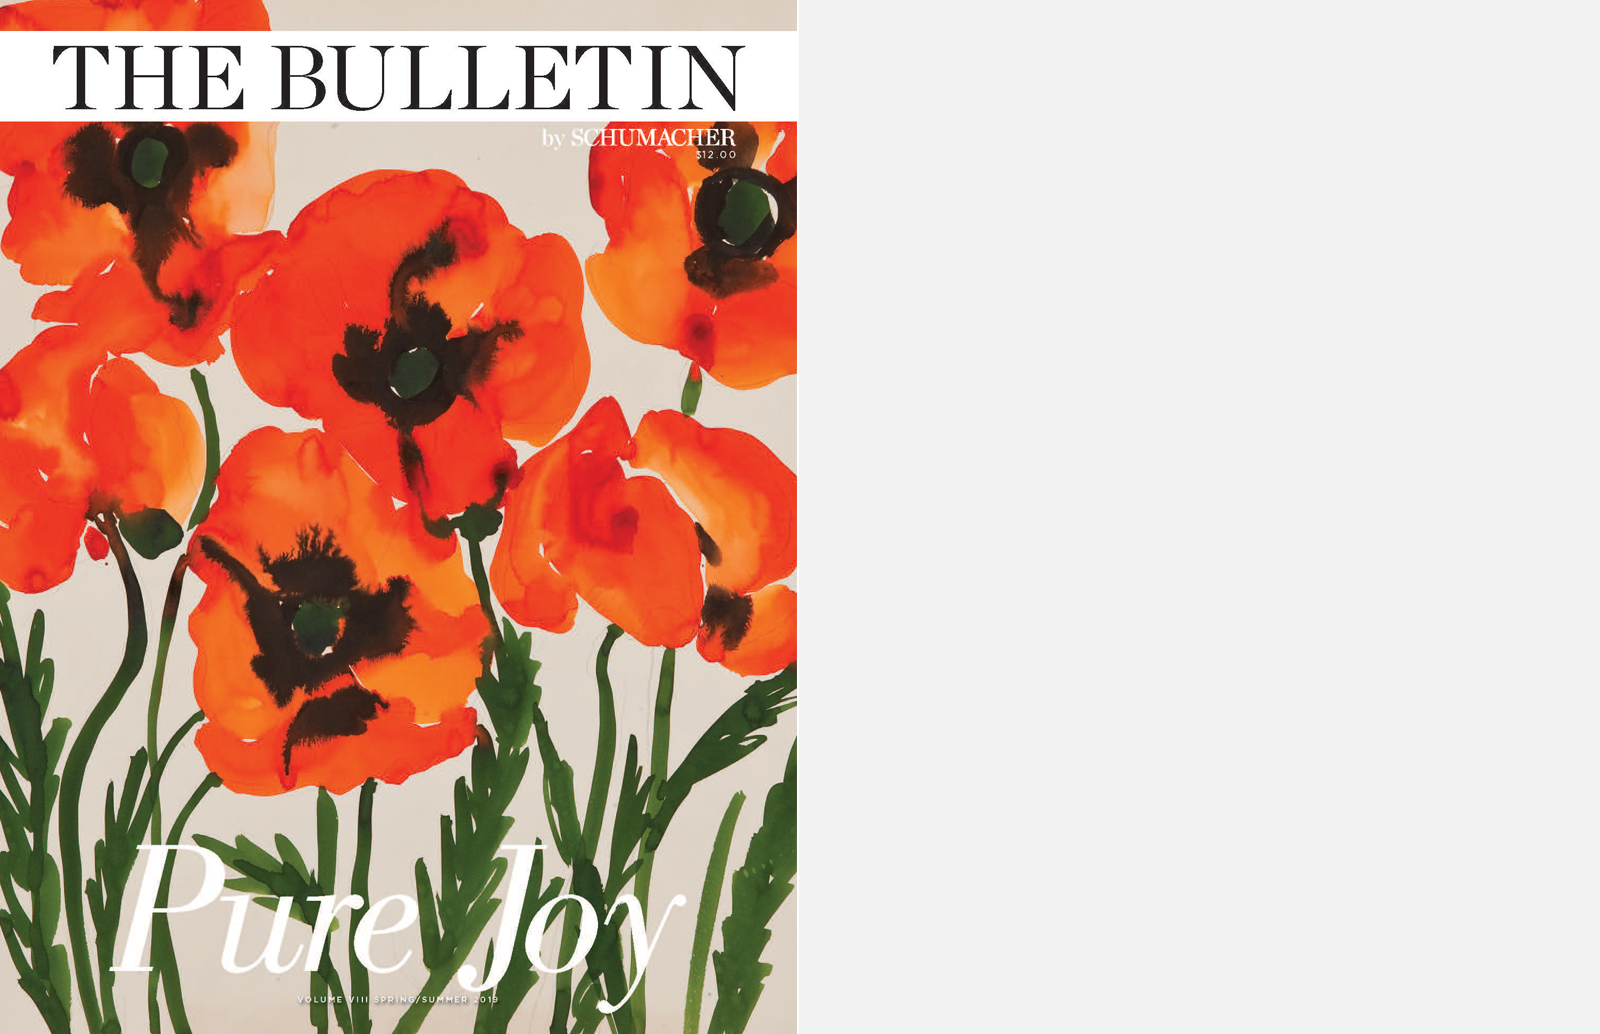 19-SP-Bulletin-cover.jpg